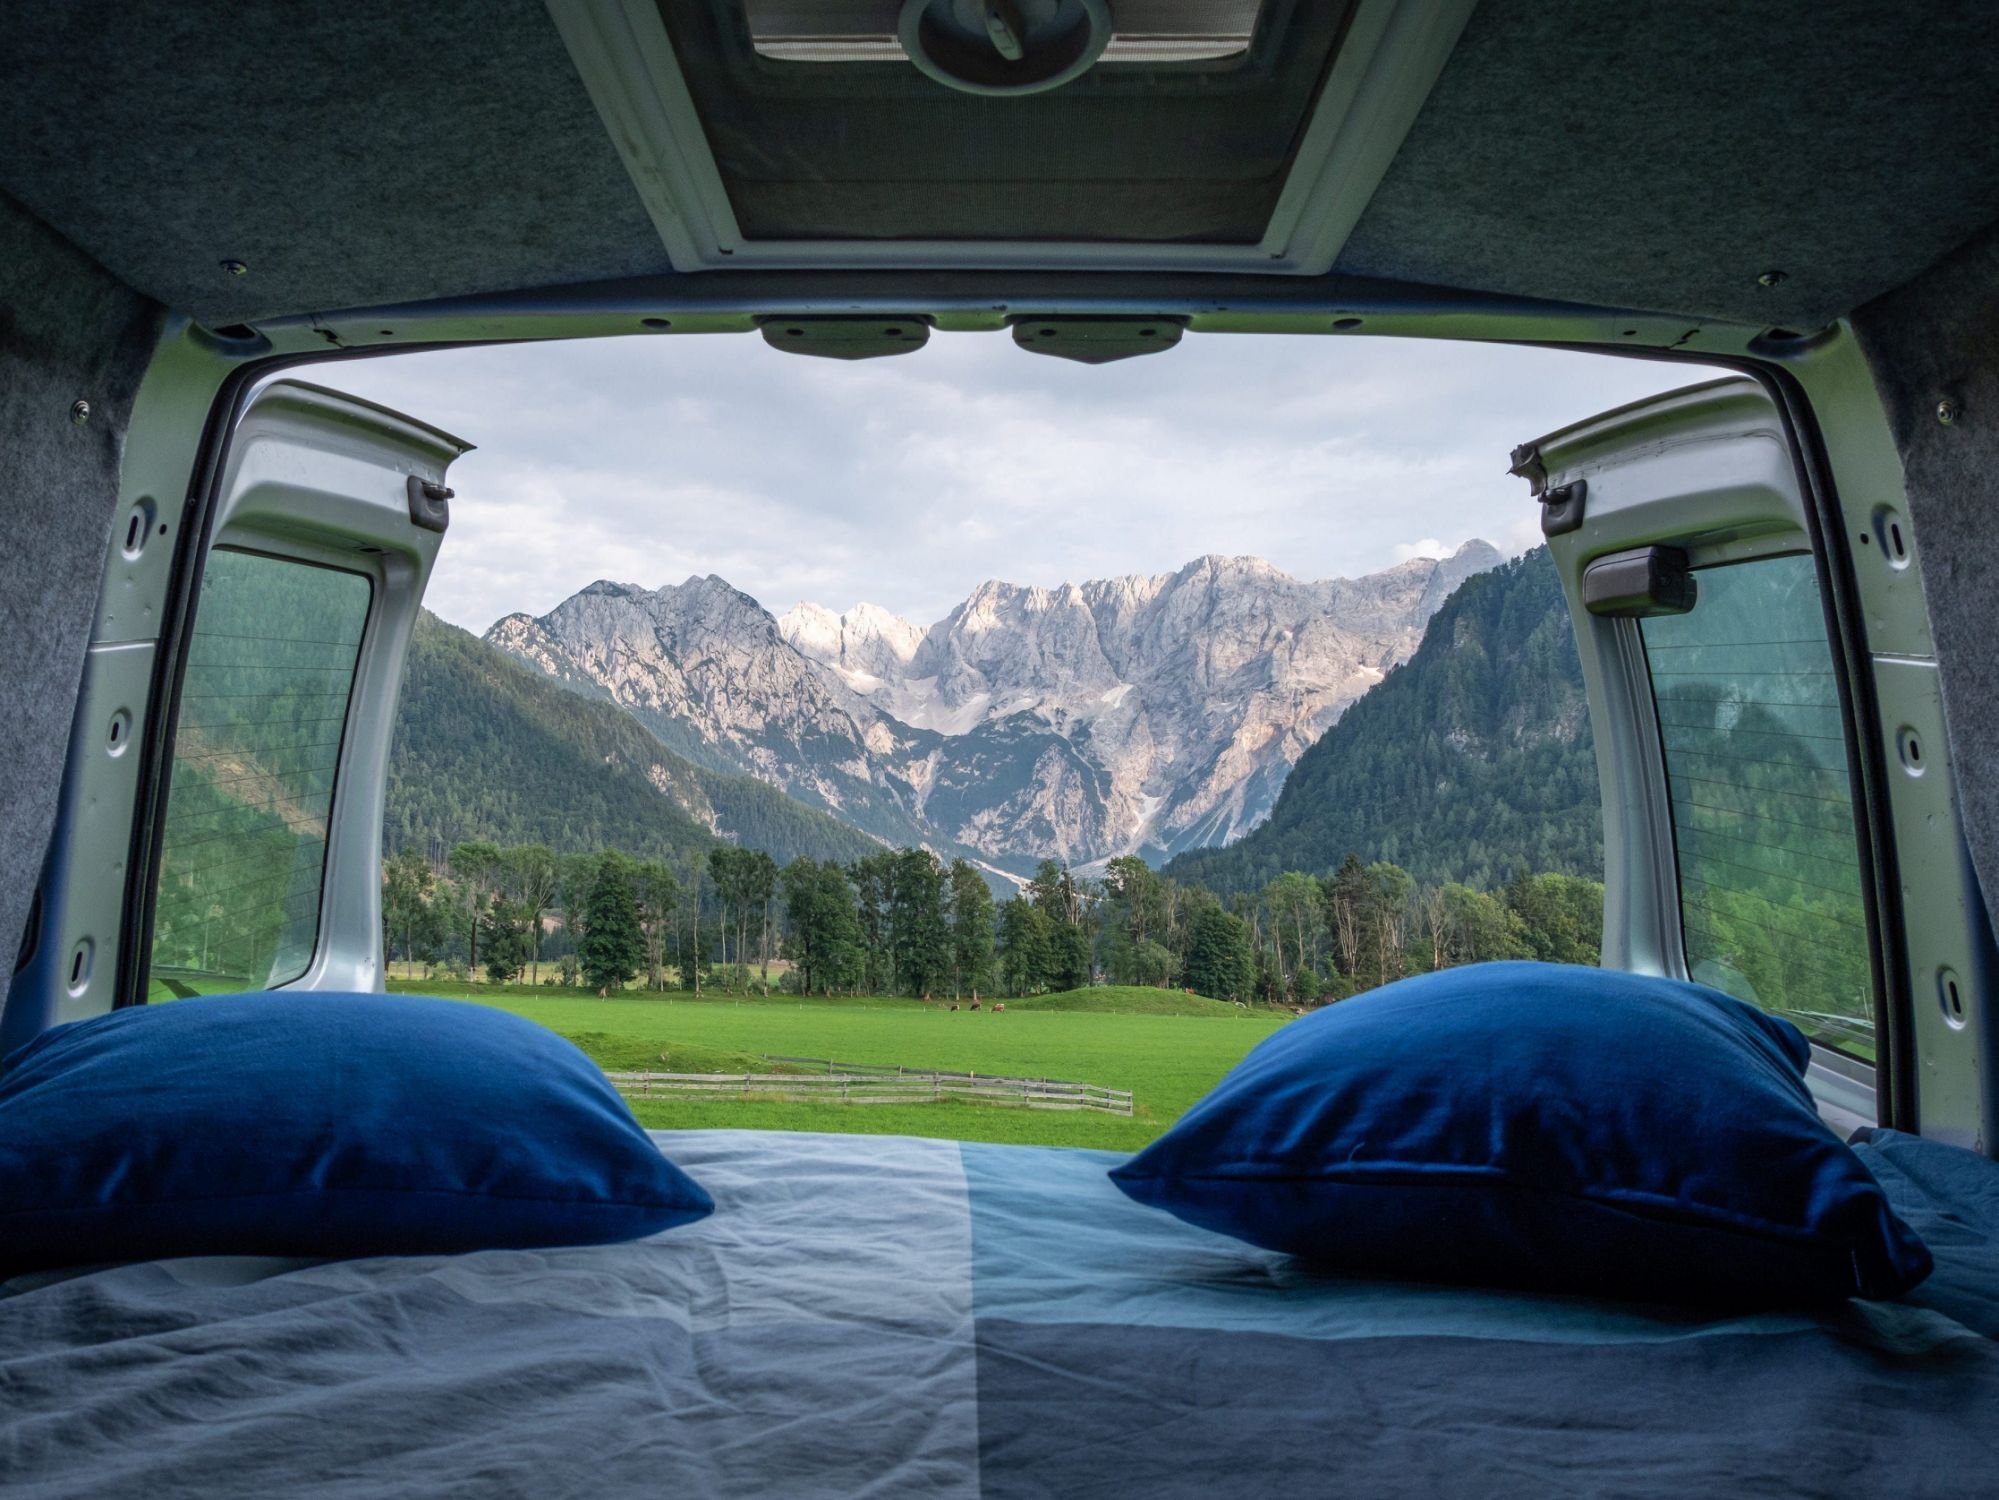 5 ways RVs and camper vans could change travel in 2021, according to an expert